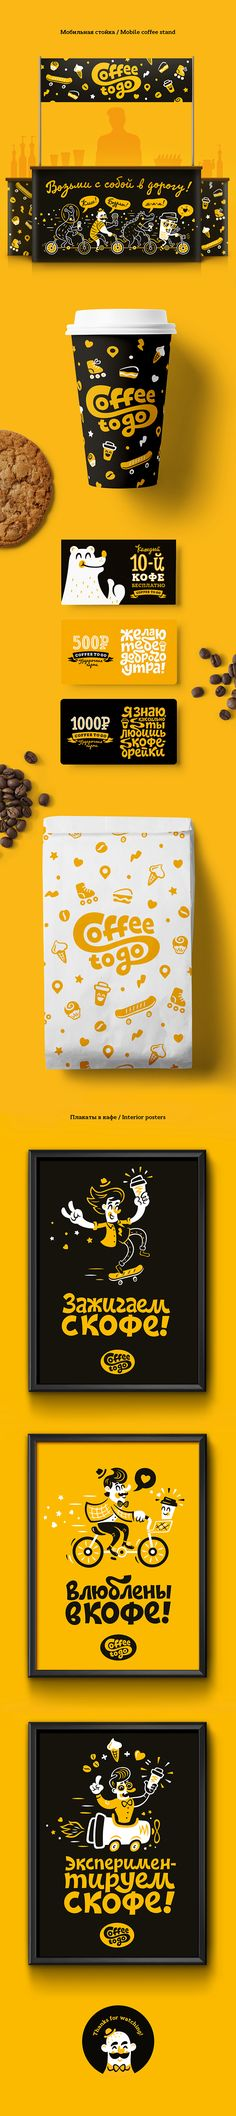 Striking #colour scheme with a fantastically fun illustrative style. Coffee to Go